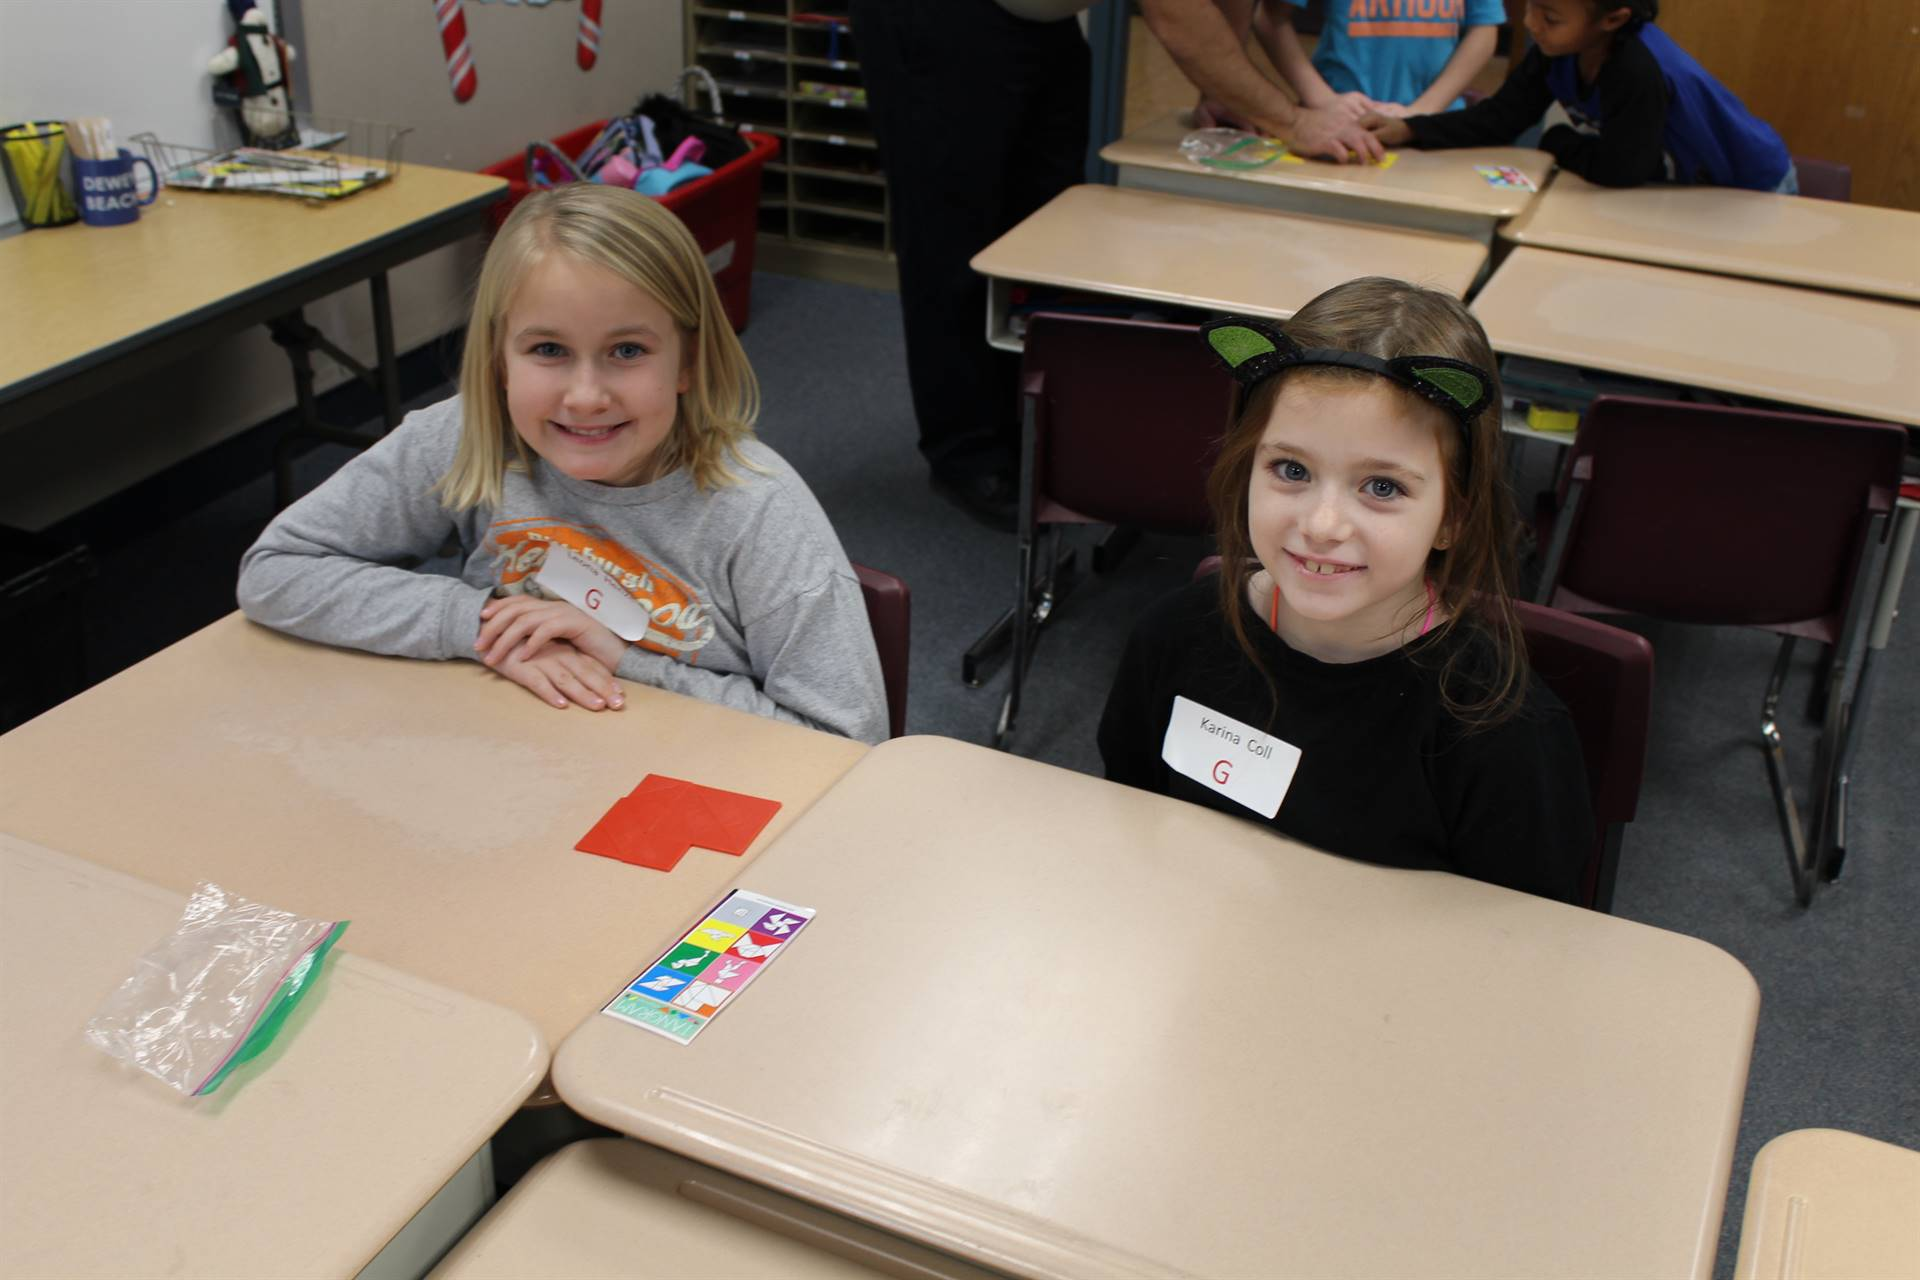 Two students working on tangrams